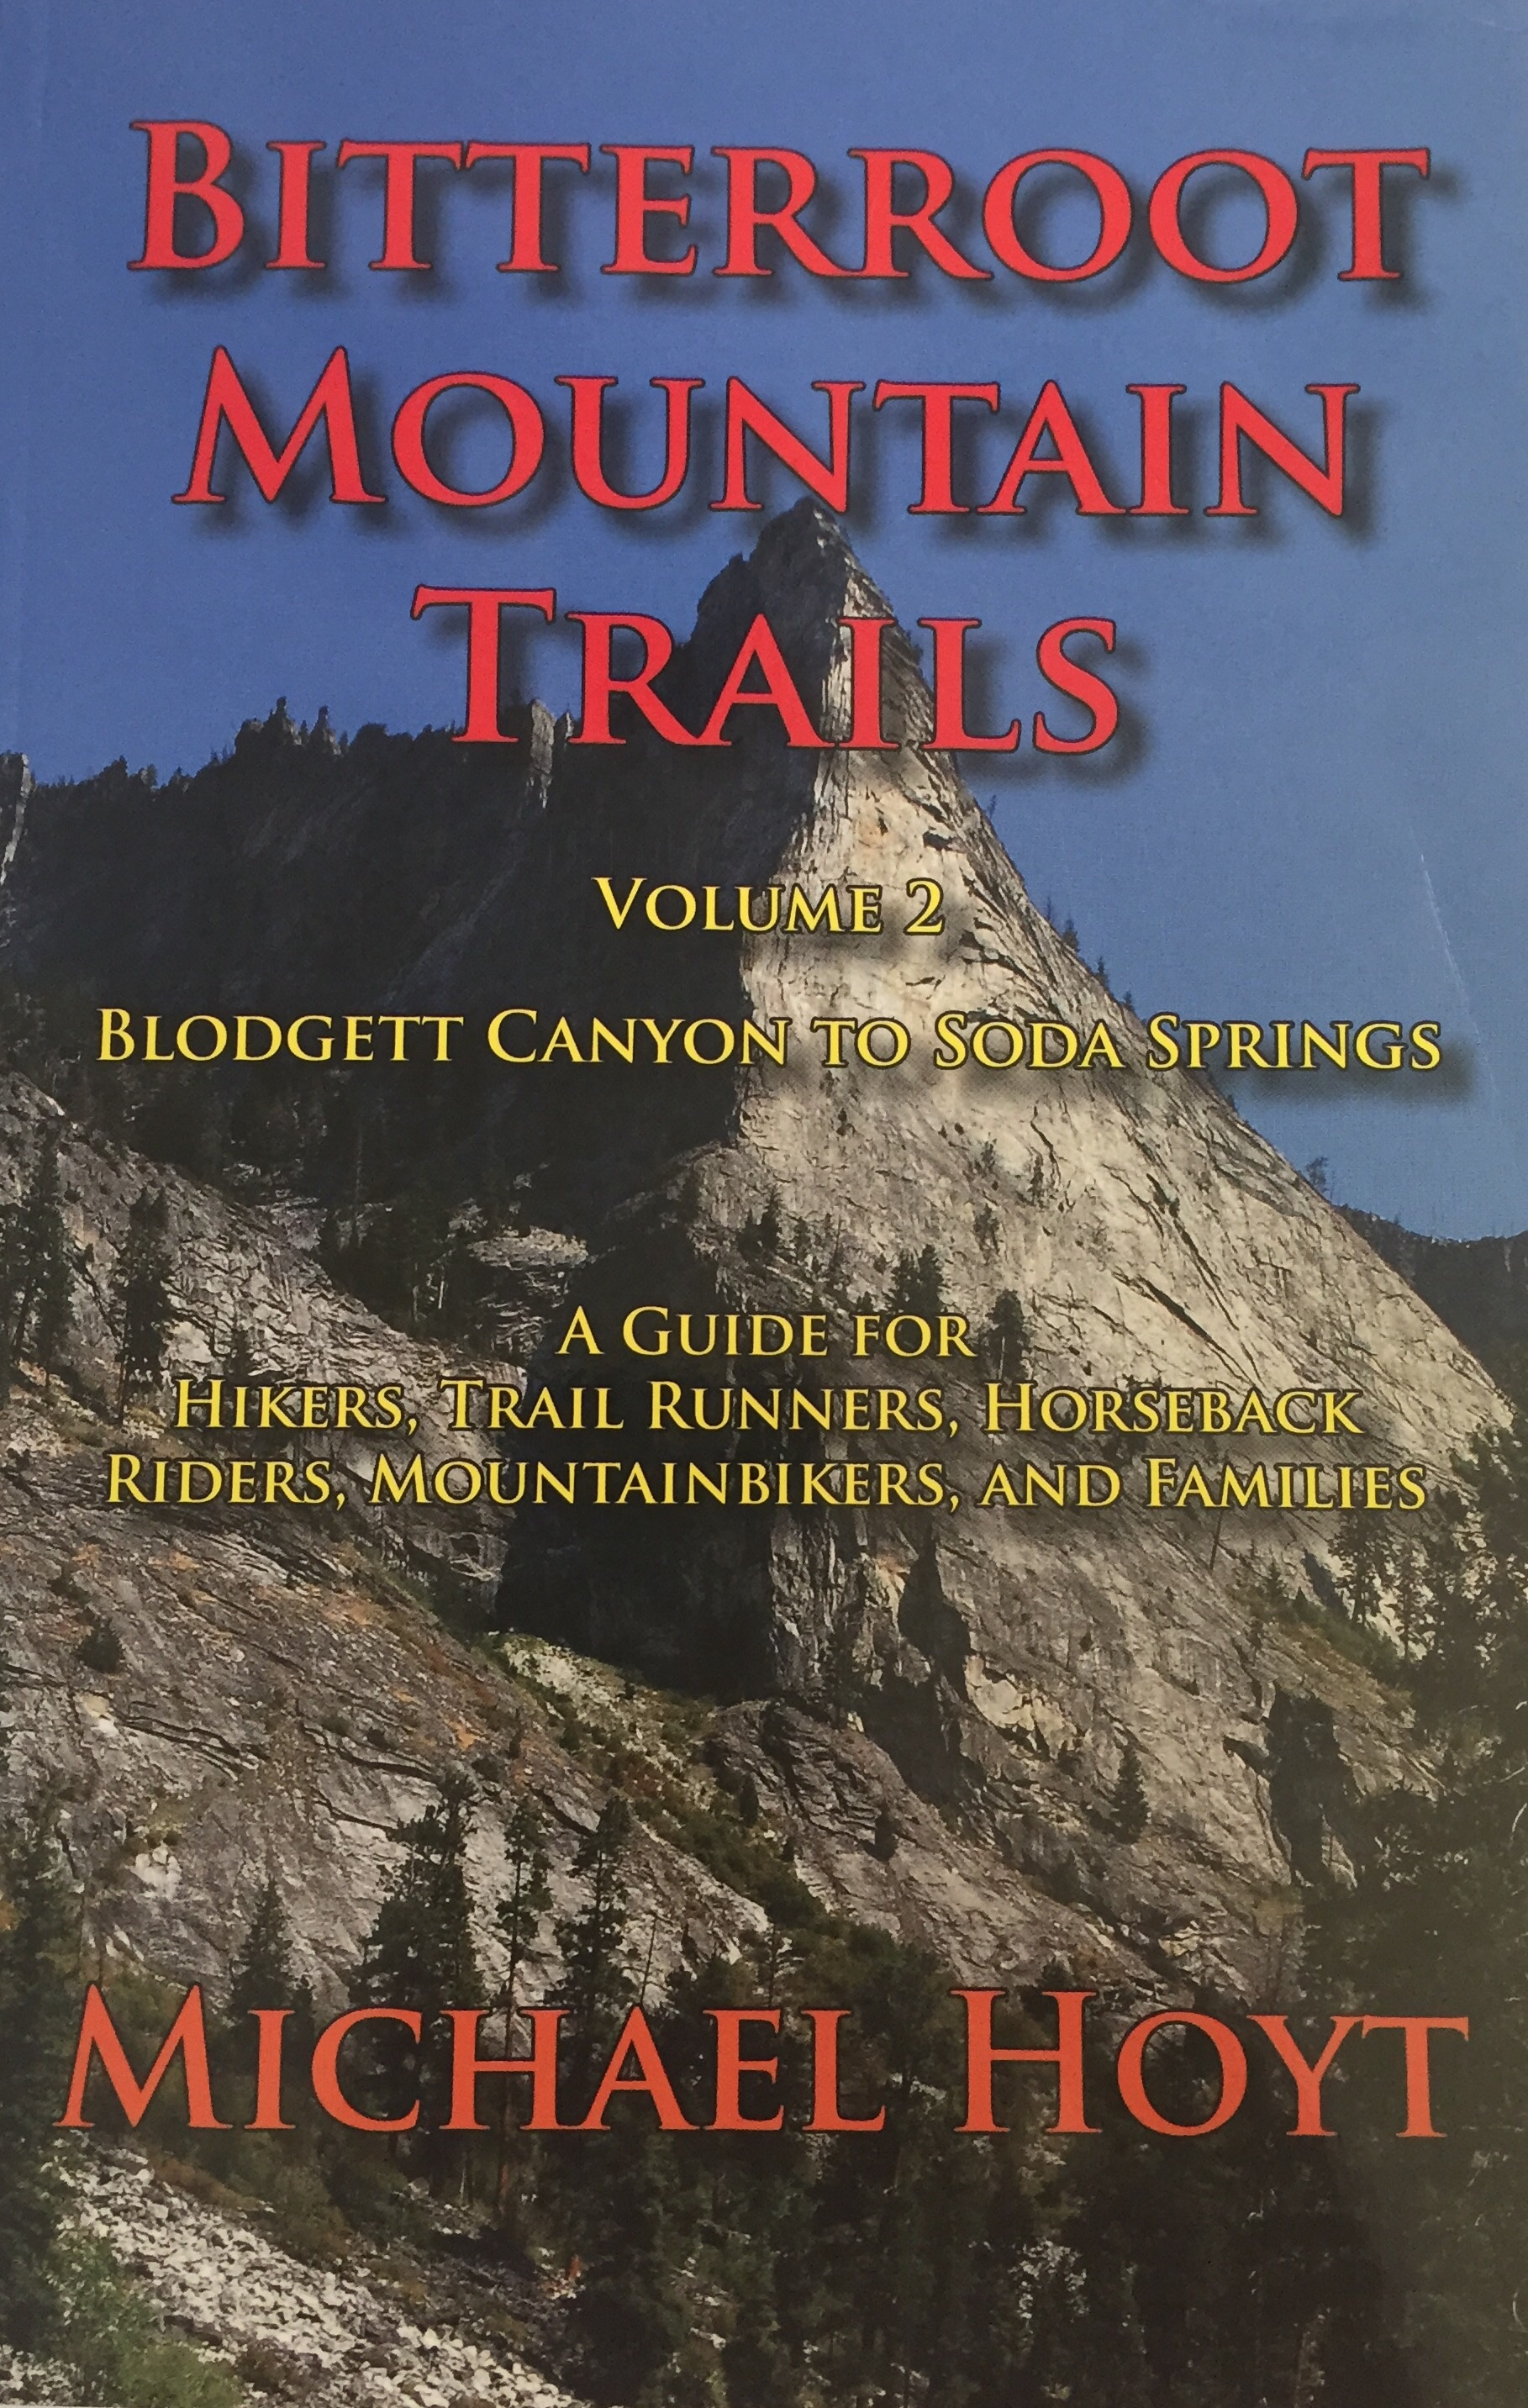 Bitterroot Mountain Trails, Volume 2